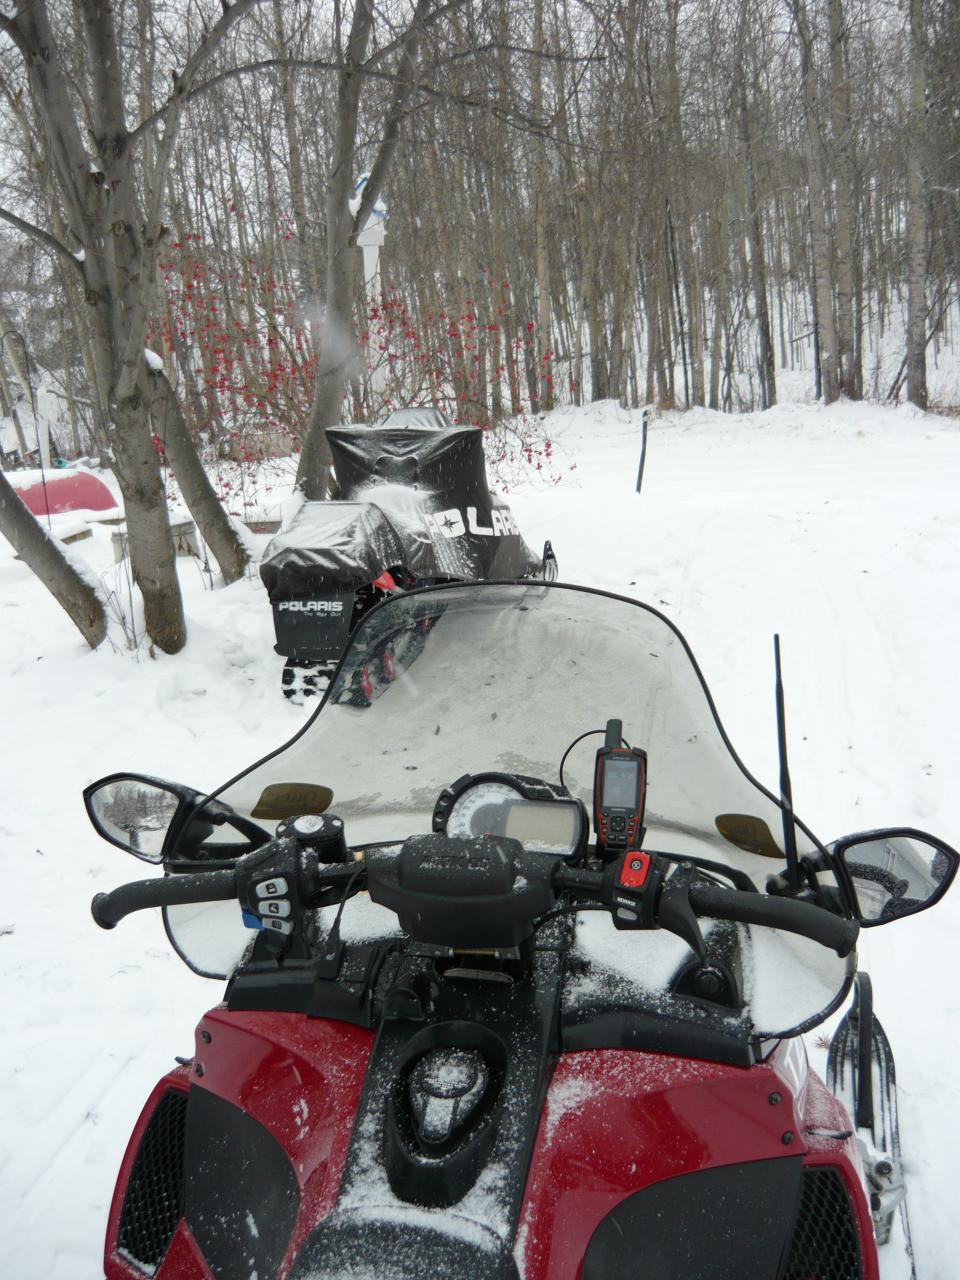 Skidoo Gps And Mount Photos Articles Garmin Battery Wiring Diagram Gpsmap 62s Mounted With Am Ram Rap B 138u Kit On My 2008 Arctic Cat Tz1 Hard Wired Directly To The This Places It A Stable Surface